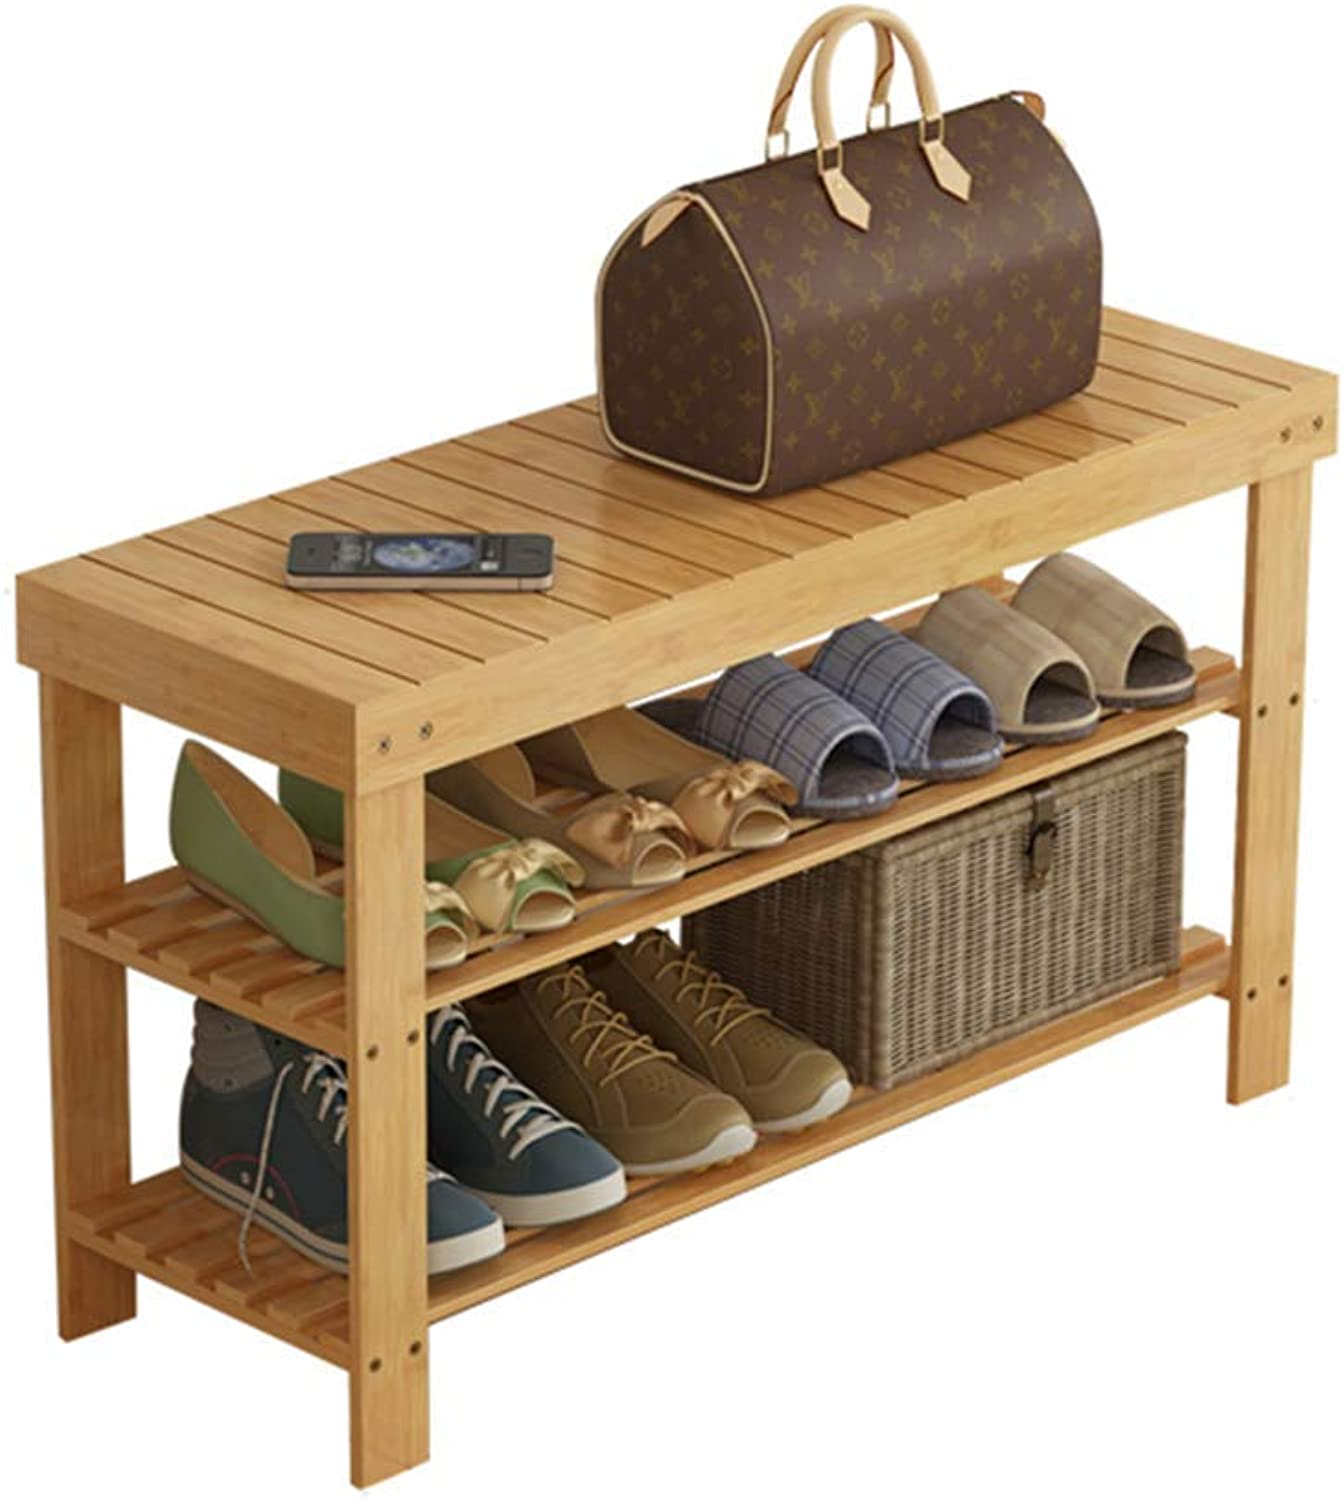 Hallway Furniture shoes Racks 2-Tier Bamboo shoes Bench shoes Rack Storage Organizer Solid Wood shoes Cabinet - 6 Sizes,60  28  45CM